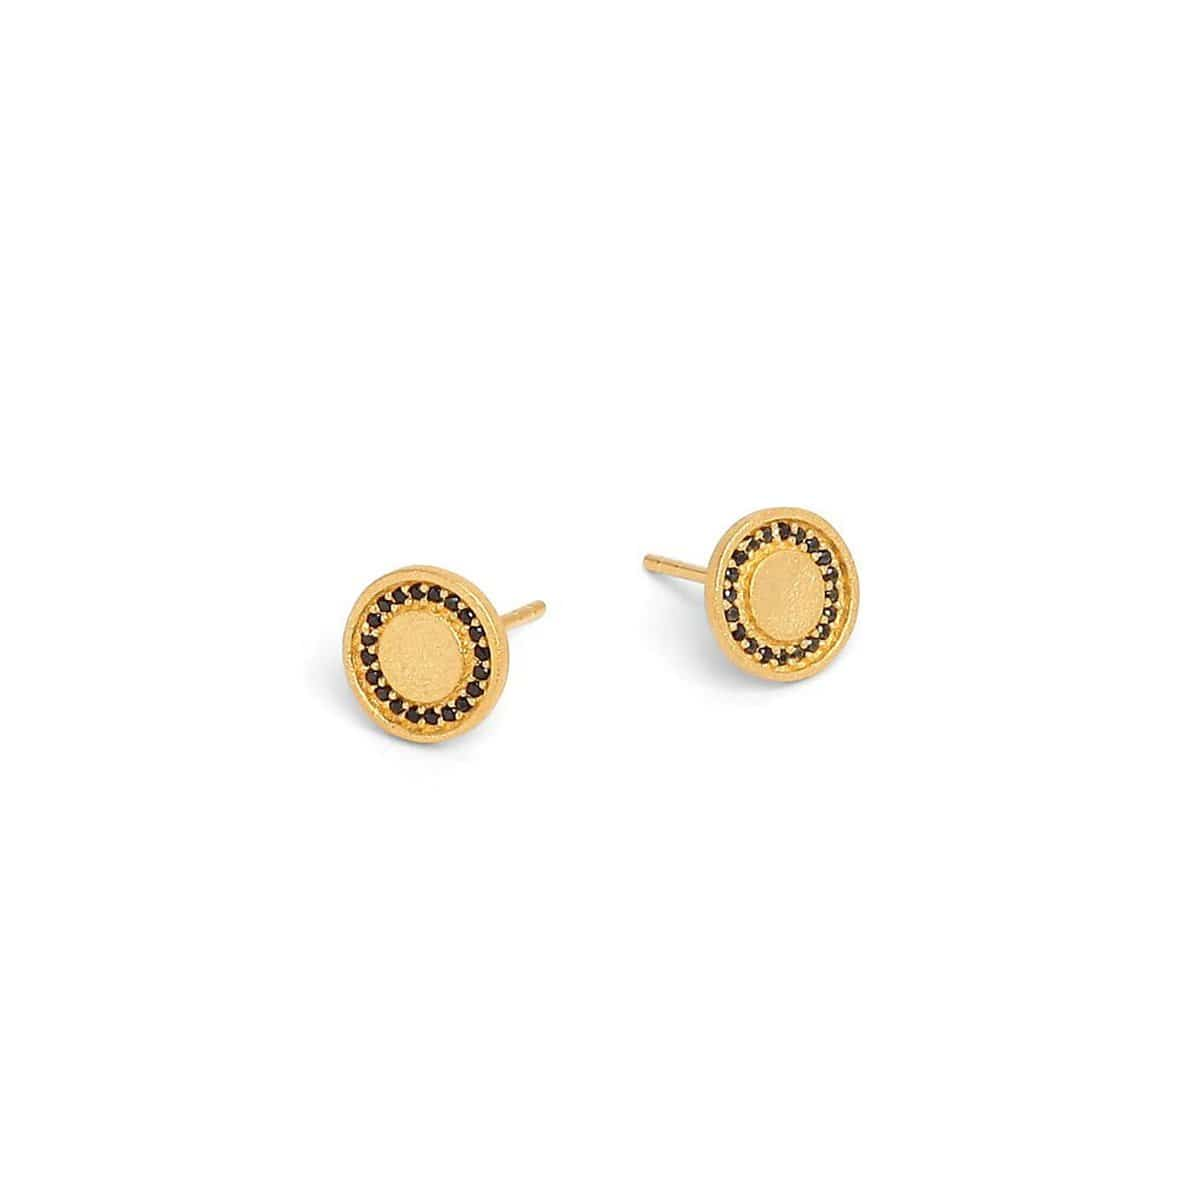 Cavi Black Spinel Earrings - 19157496